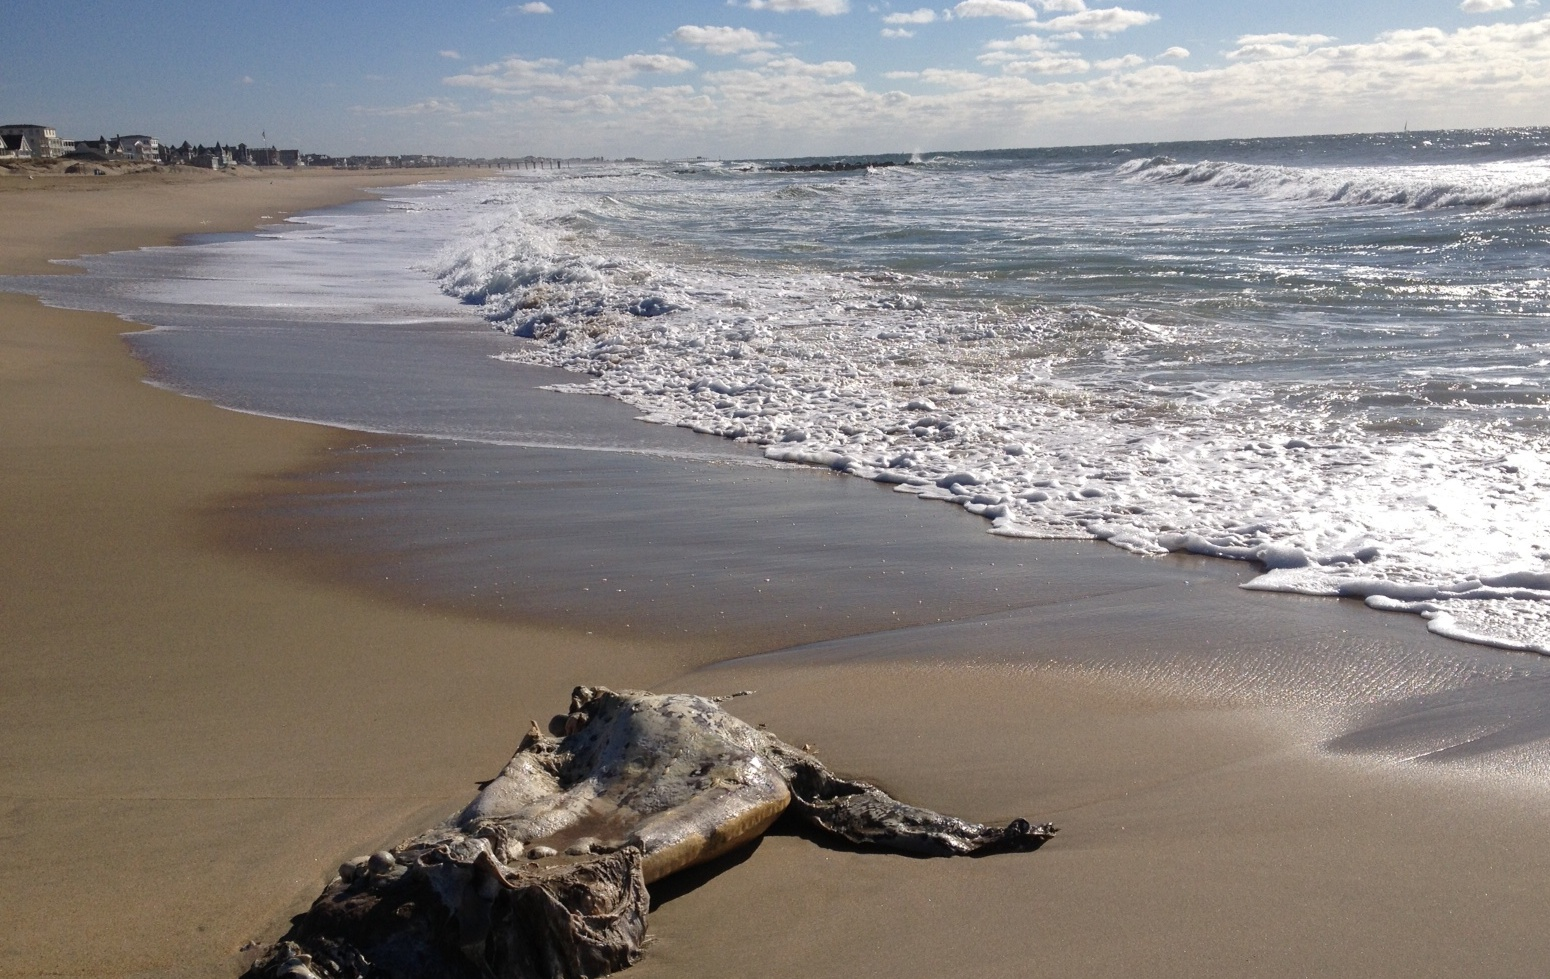 Video: Dead leatherback sea turtle on N.J. beach | EnviroGuyEnviroGuy